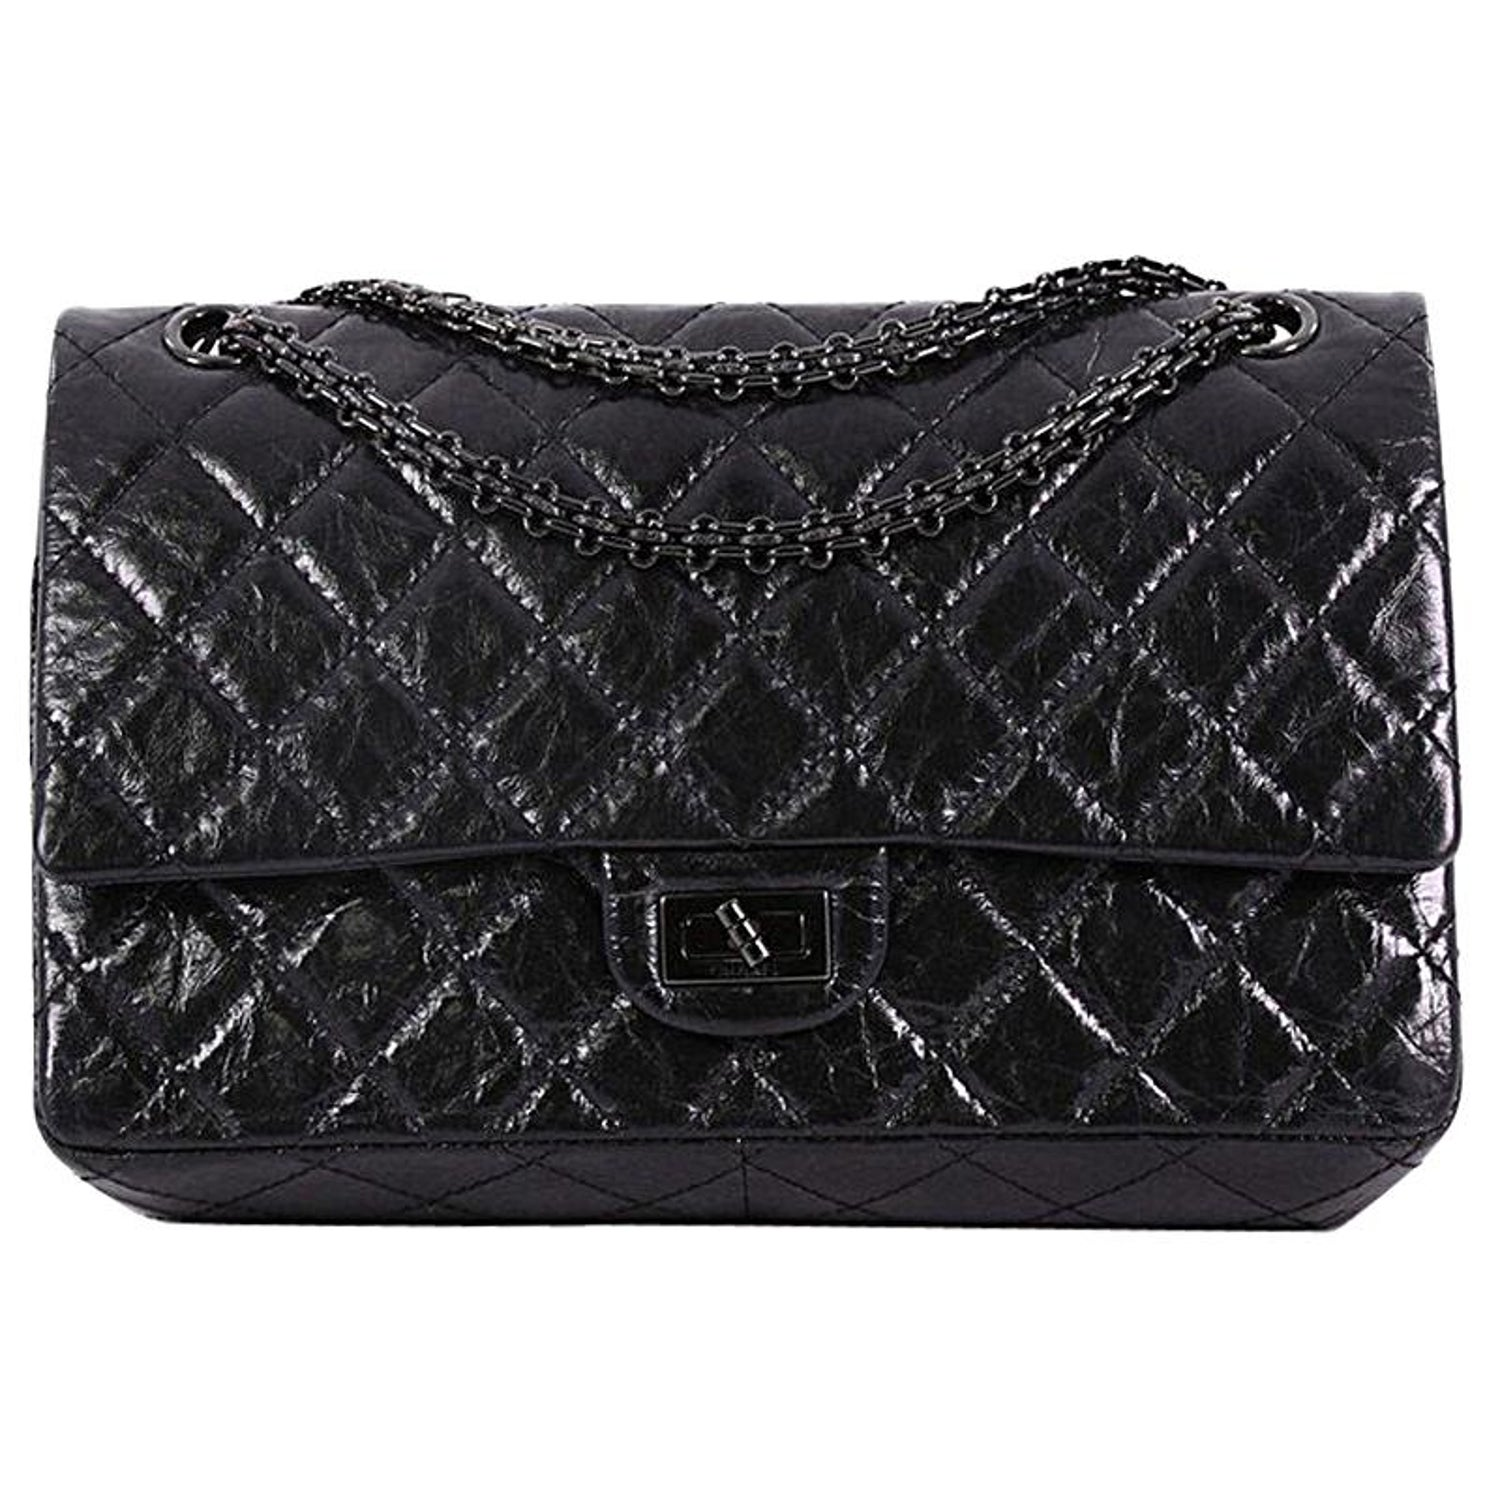 312a305b06a3 Chanel So Black Reissue 2 55 Handbag Quilted Glazed Calfskin 226 At